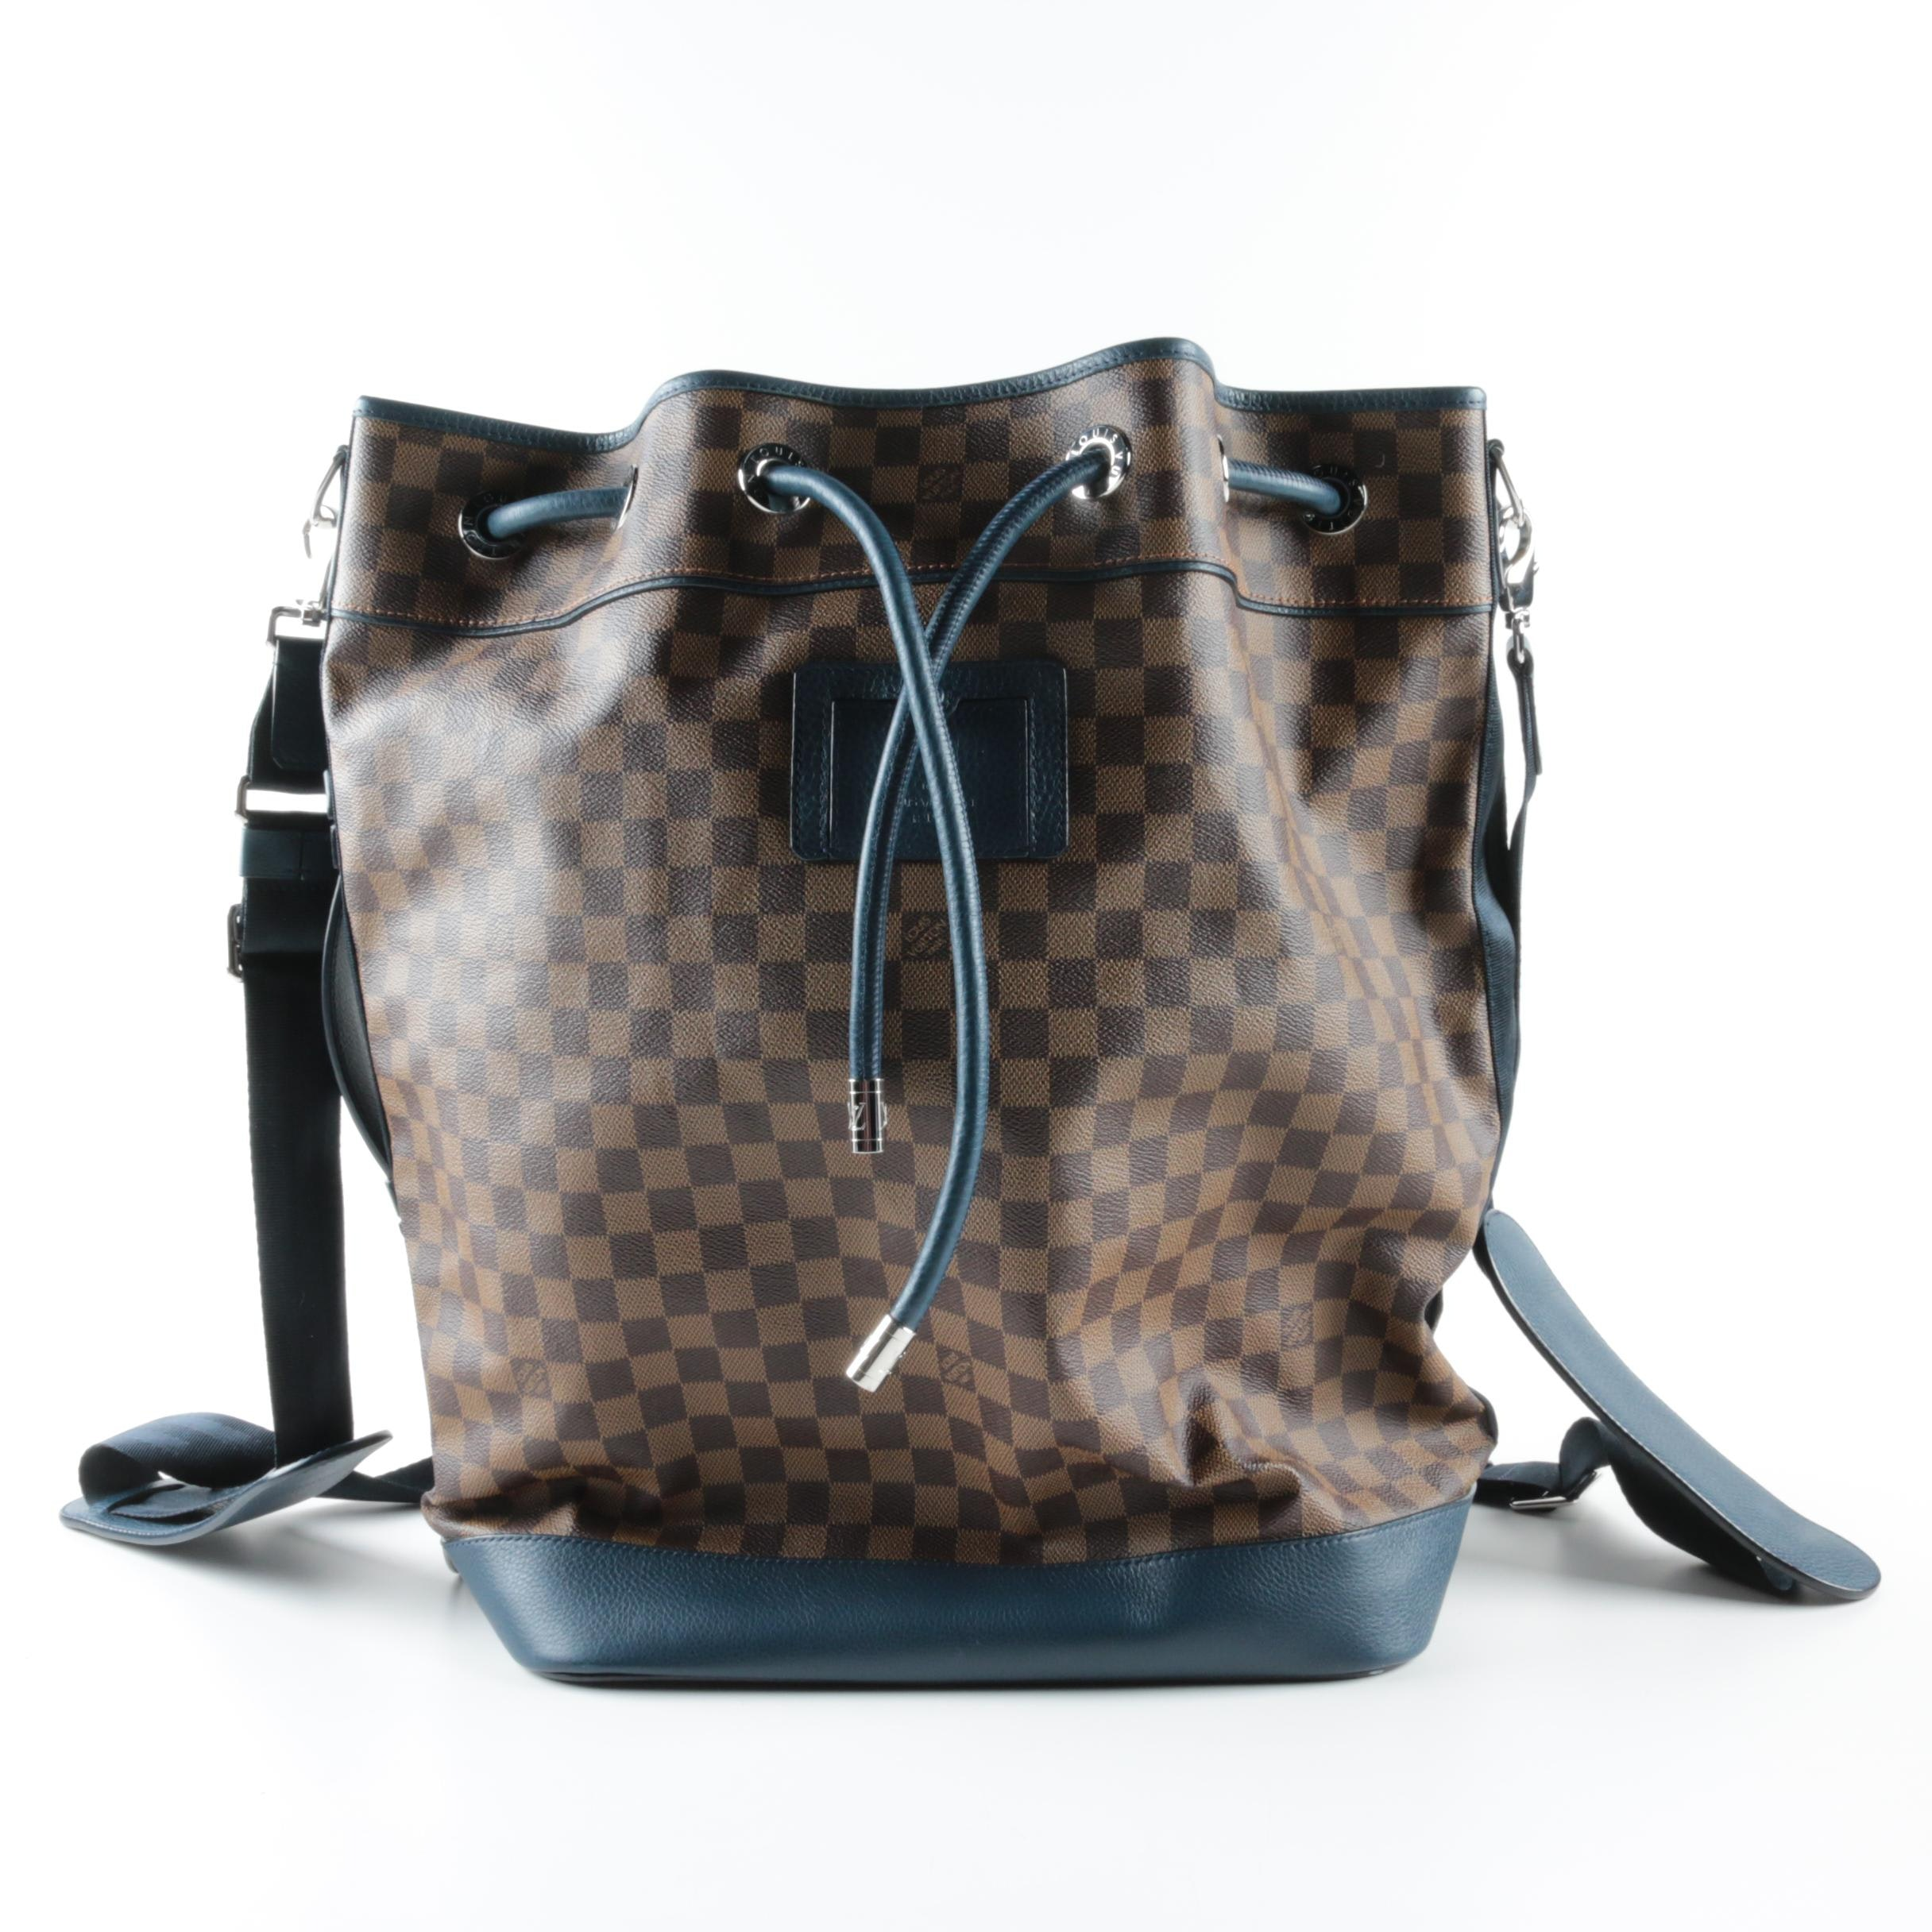 Louis Vuitton Damier Ebene Sac Marin Blue Backpack